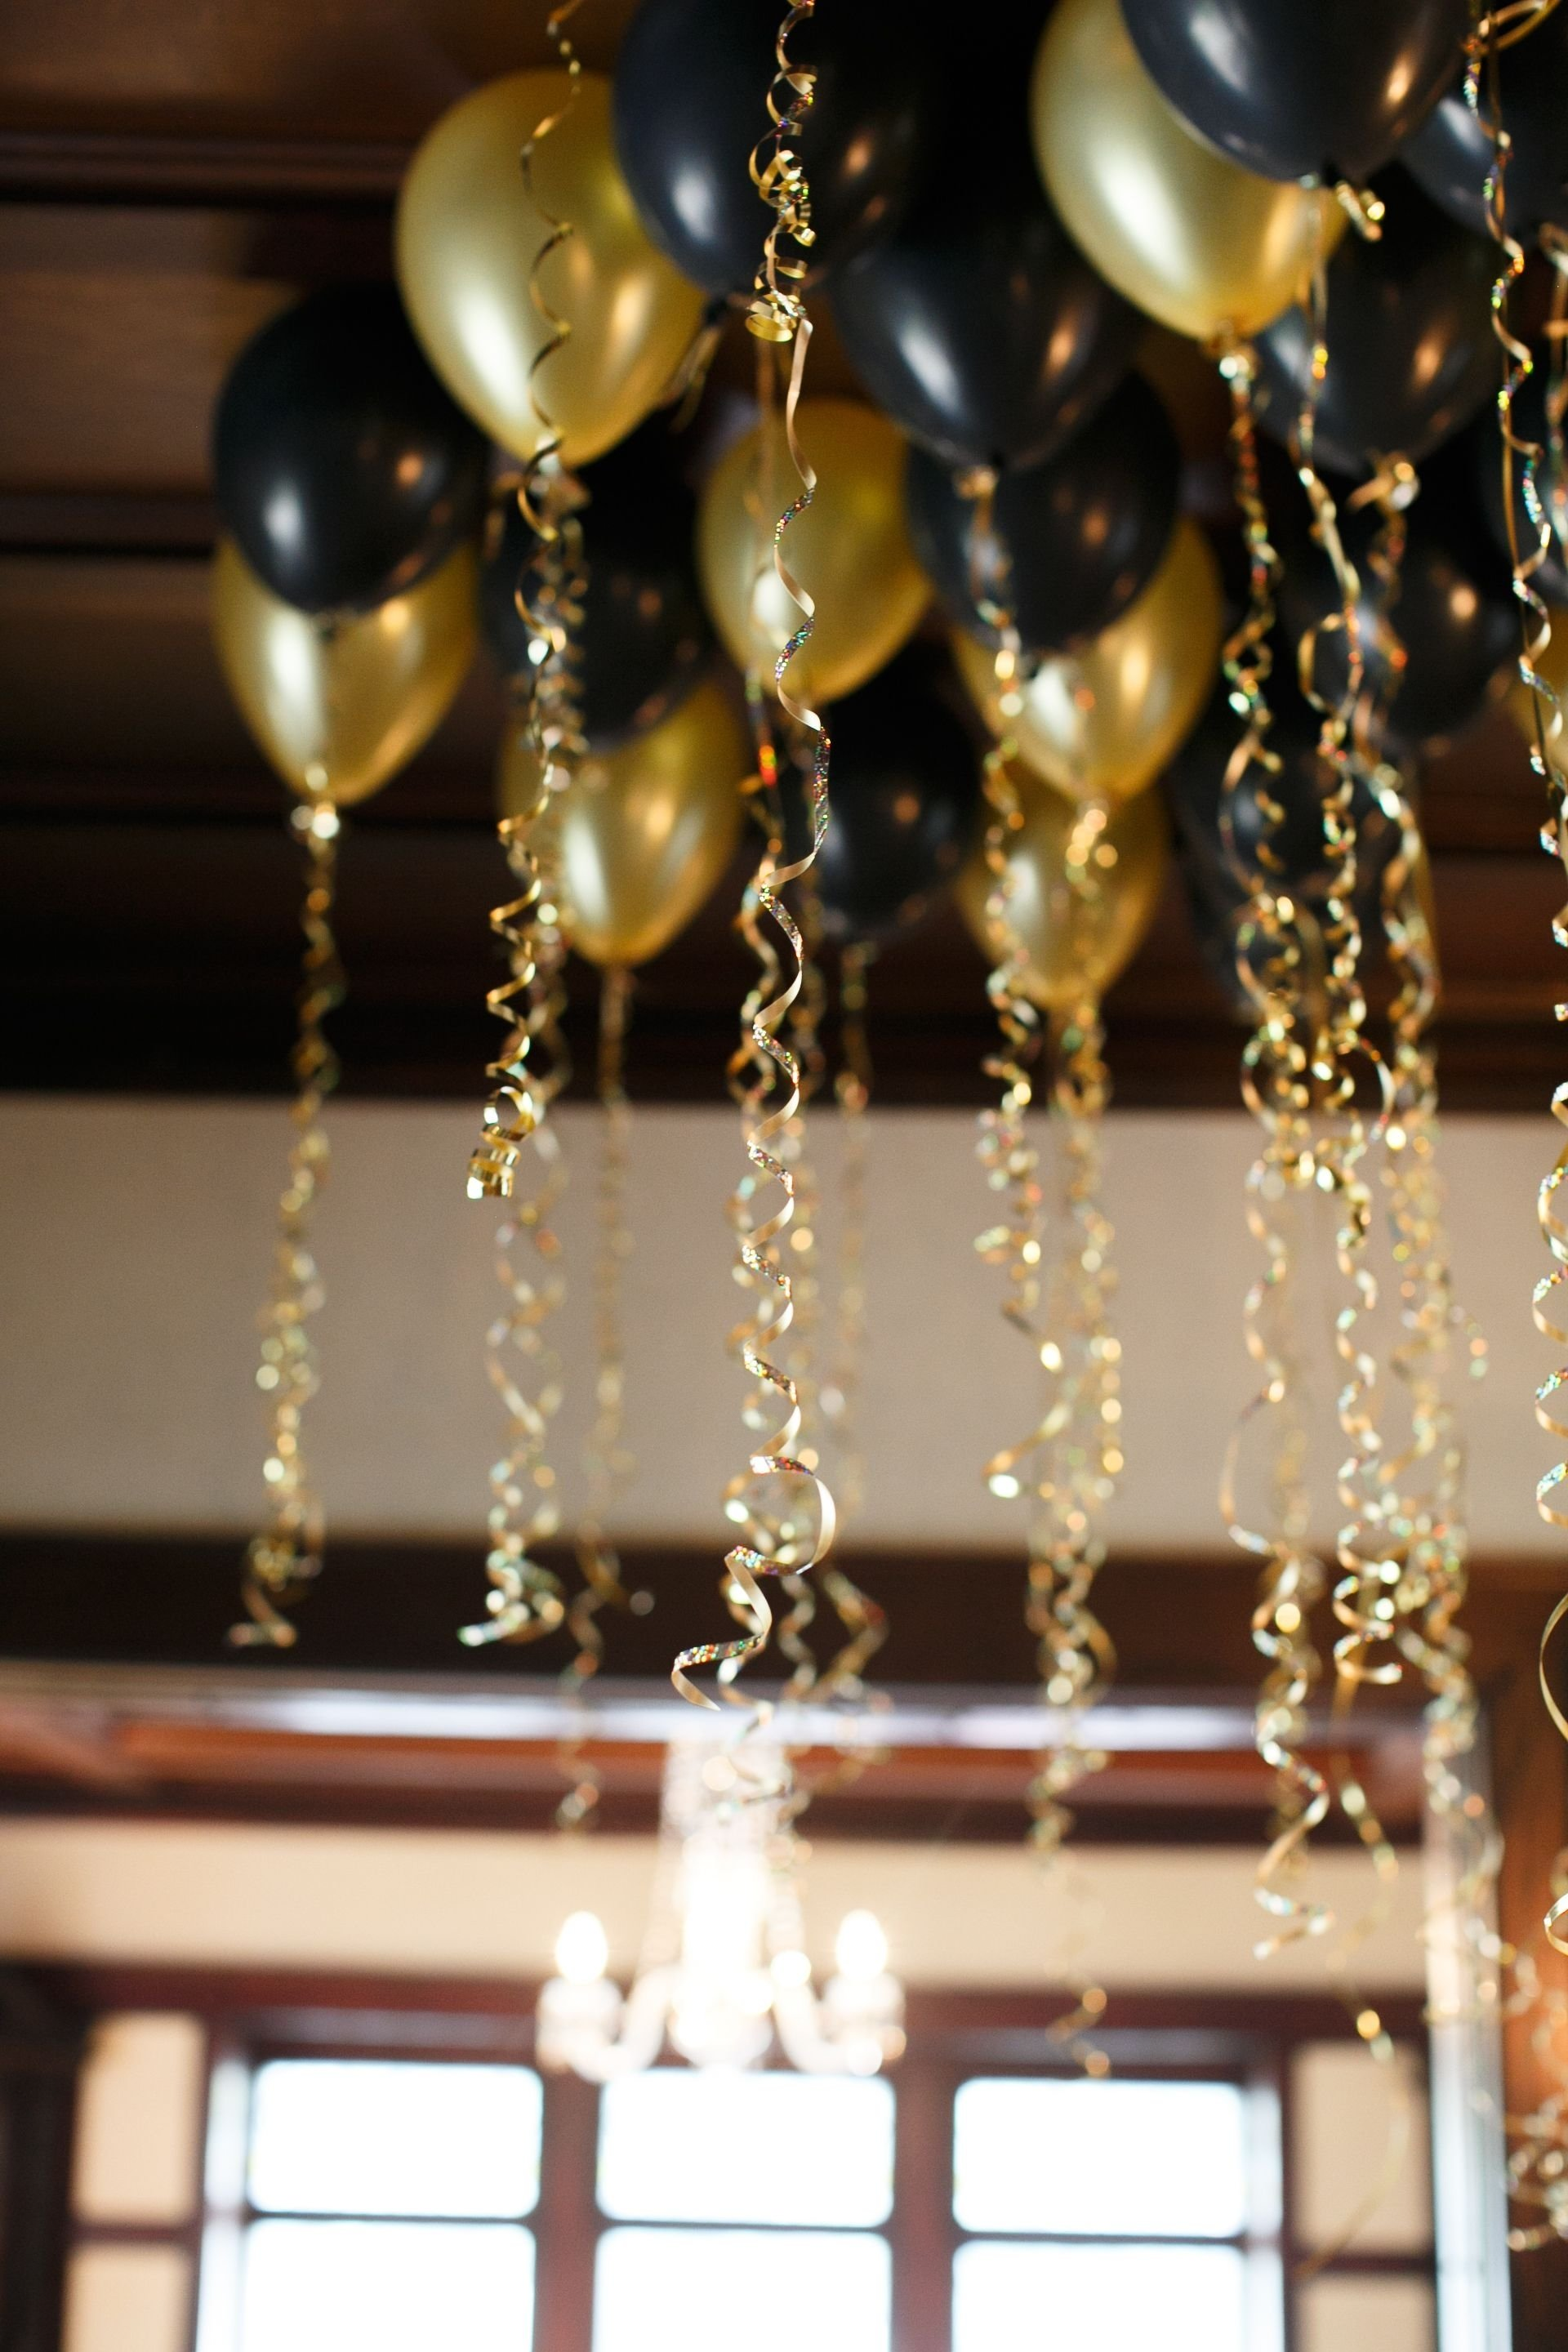 10 Unique Golden Birthday Party Ideas For Adults black gold 30th birthday party 30 birthday parties 30 birthday 1 2020